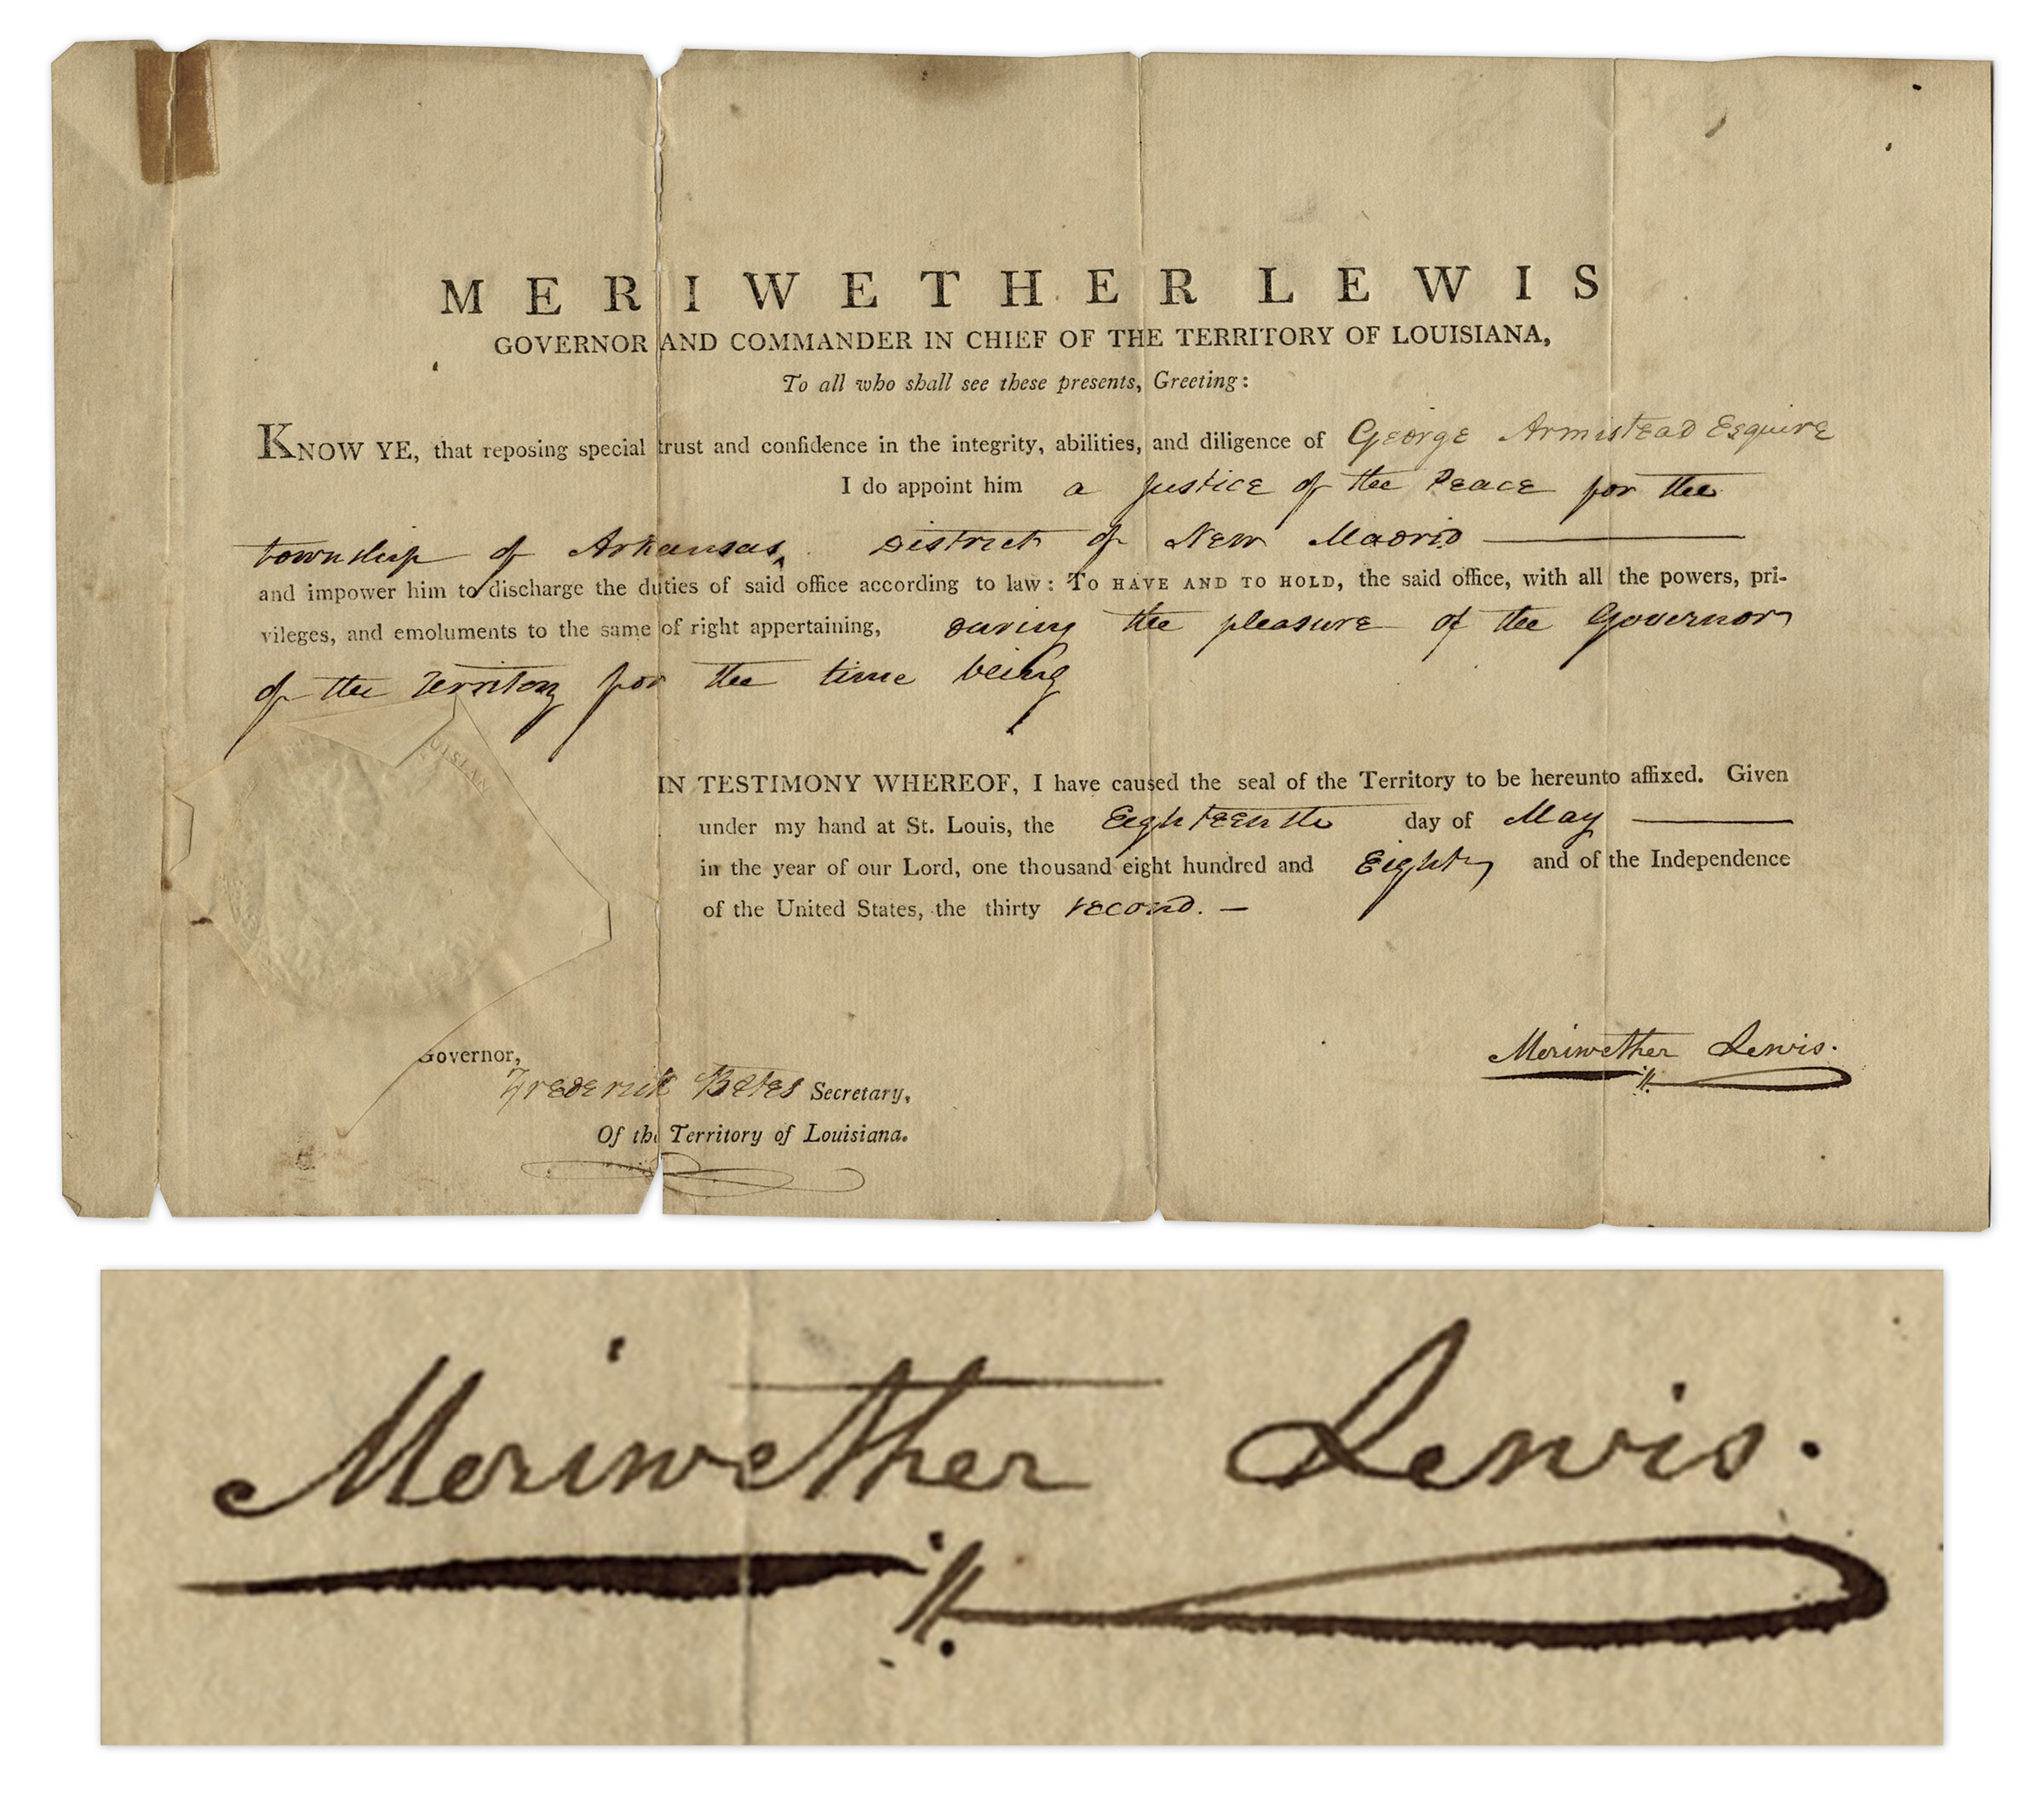 Lewis and Clark autograph Meriwether Lewis Signed Appointment as Governor of Louisiana From 1808 -- Very Scarce Signature, Dated 2 Years After the Lewis & Clark Expedition